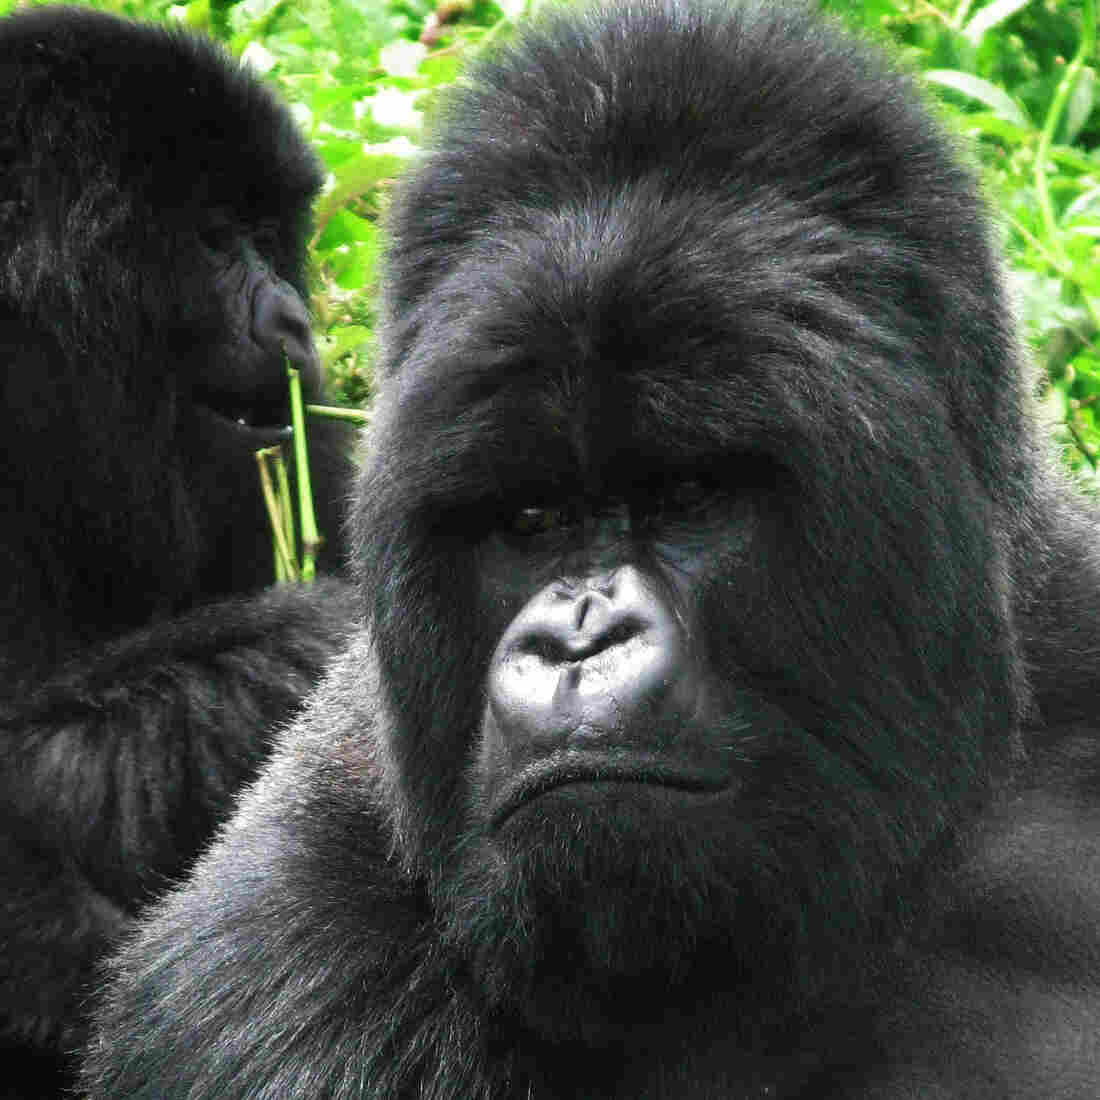 Growling With The Gorillas: A Rwanda Mountain Trek